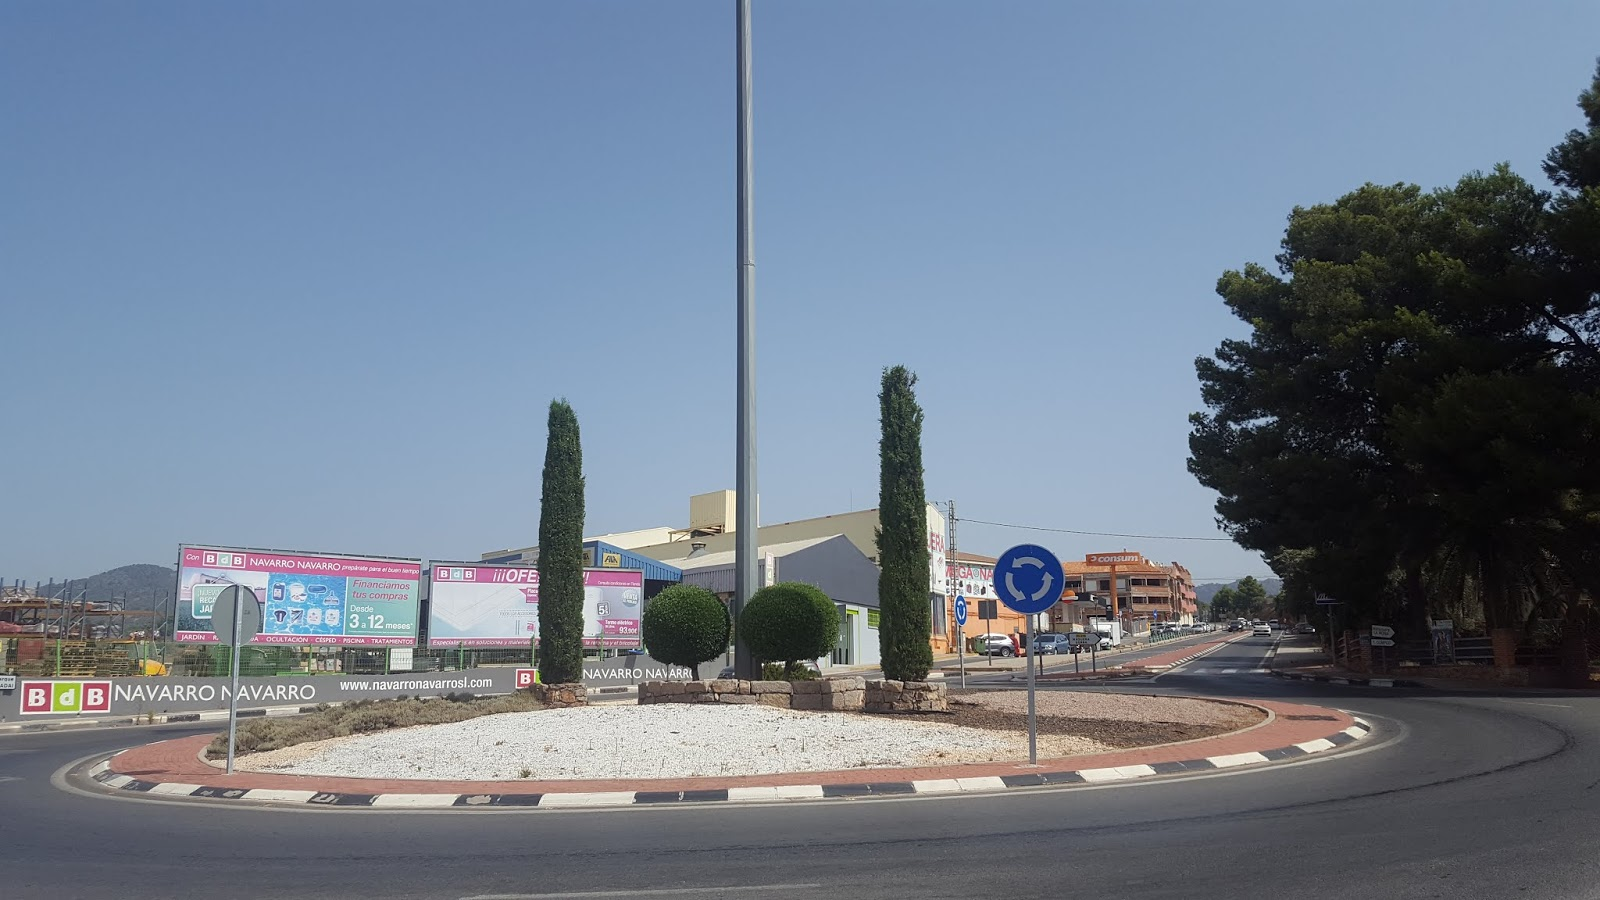 Roundabout at junction of CV-310 and CV-315 roads at the beginning of l'Oronet